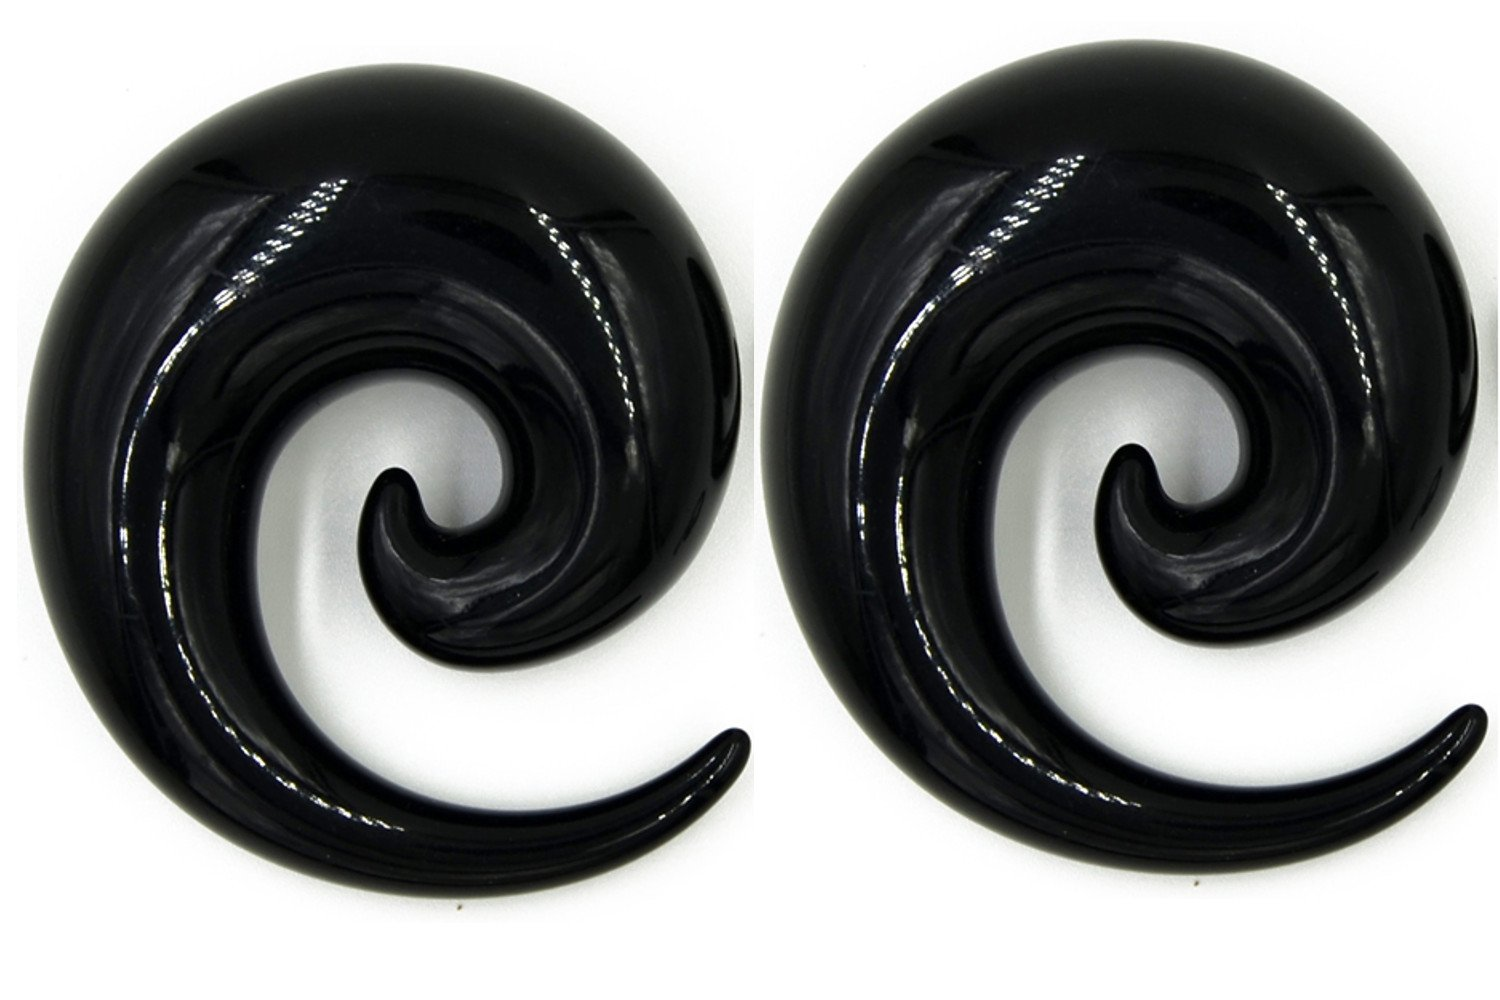 Zaya Body Jewelry Pair of Black Ear Plugs Tapers Spirals Horseshoes Tapers Gauges 16mm 18mm 20mm 24mm 26mm (16mm (5/8)) by Zaya Body Jewelry